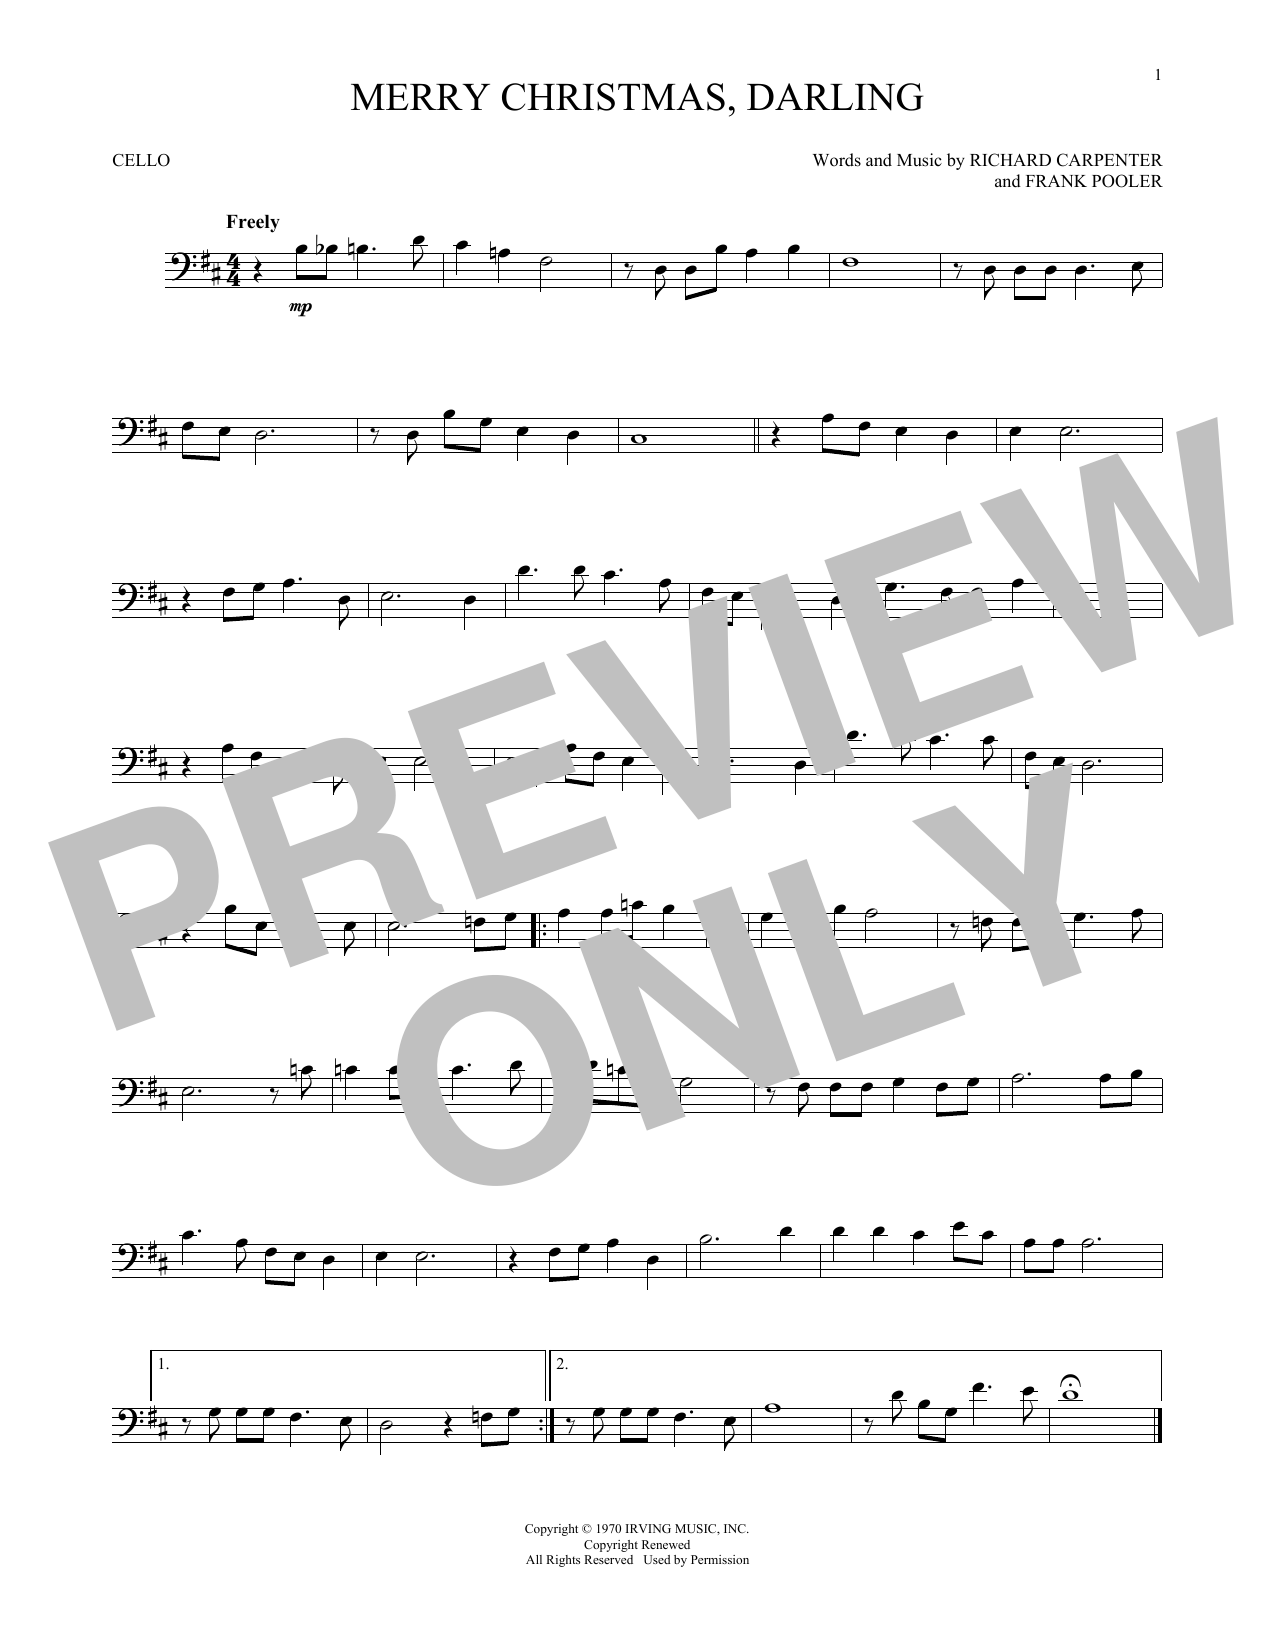 merry christmas darling sheet music by the carpenters noteflight marketplace